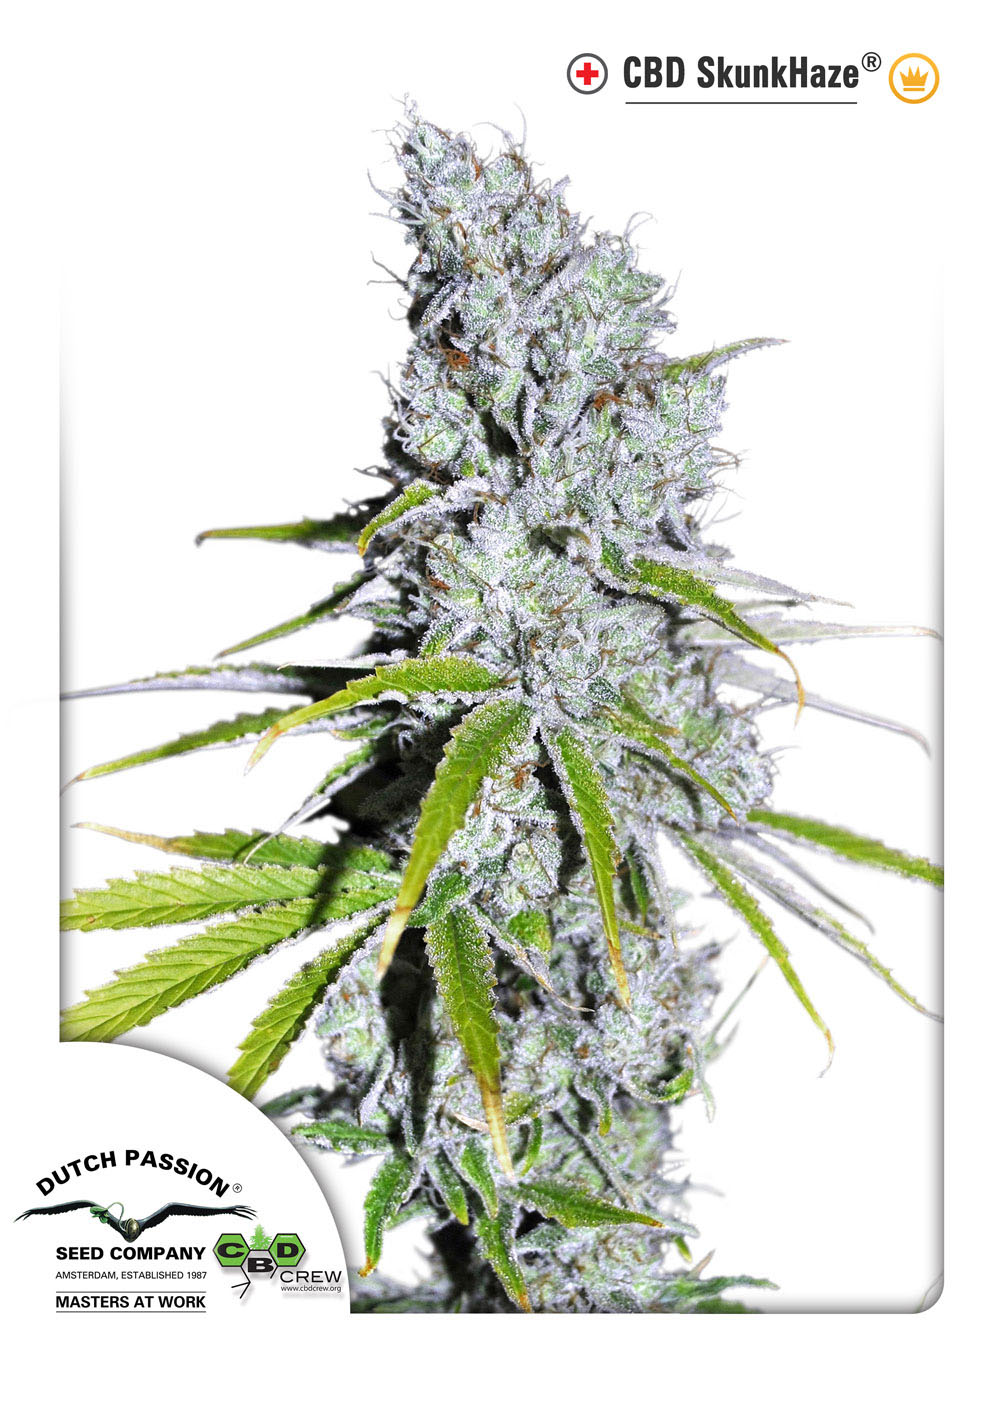 Recenzja Odmiany CBD SkunkHaze od Dutch Passion, Dutch Seeds